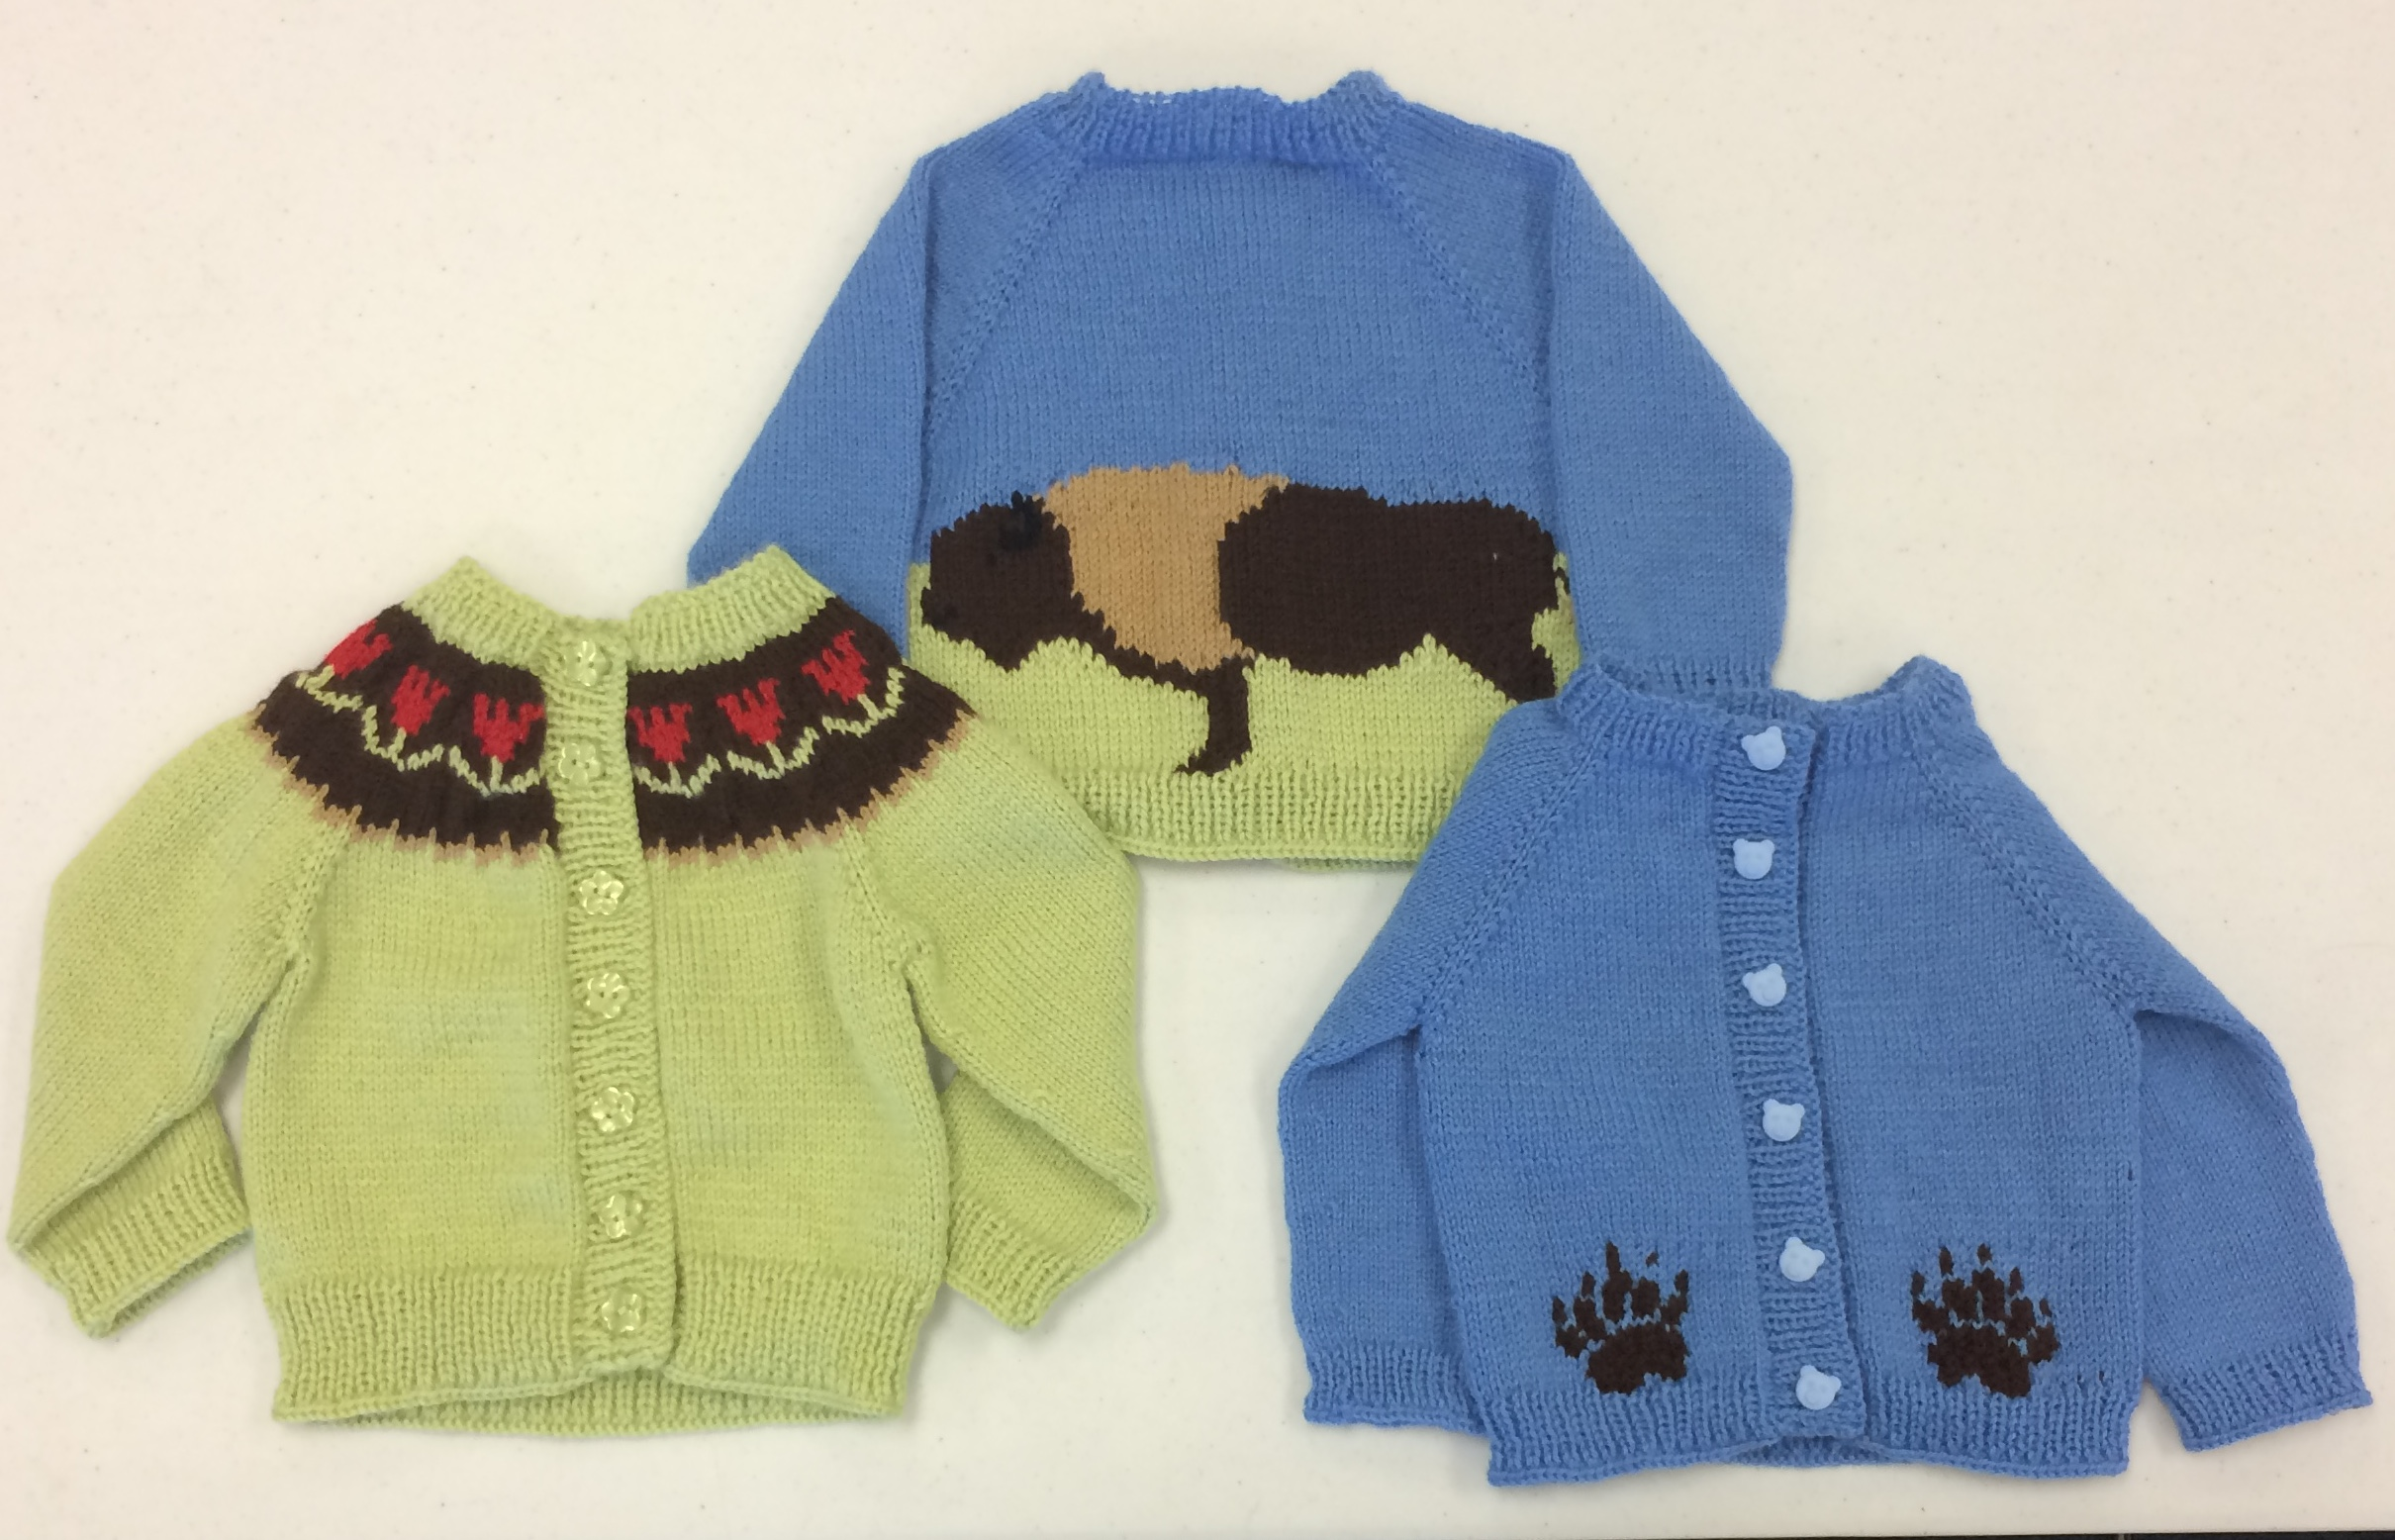 Three baby sweaters